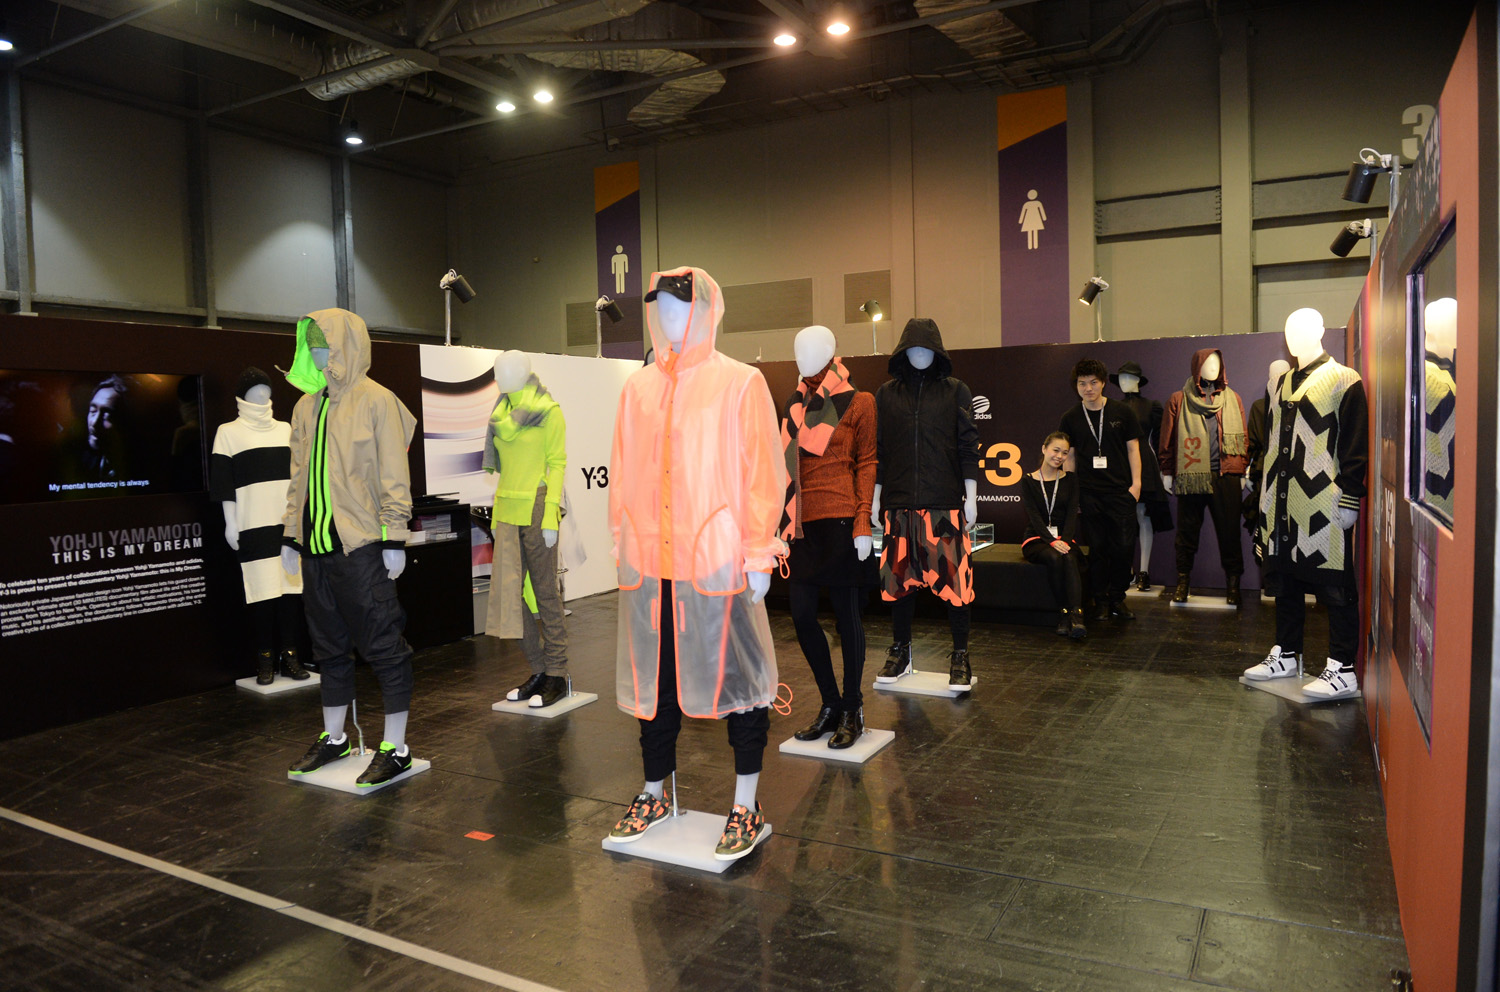 Pic 2b - The HUB is showcasing over 100 brands from around the world and linking them with over 3,000 of Asia's leading buyers and retailers who will be in attendance.JPG